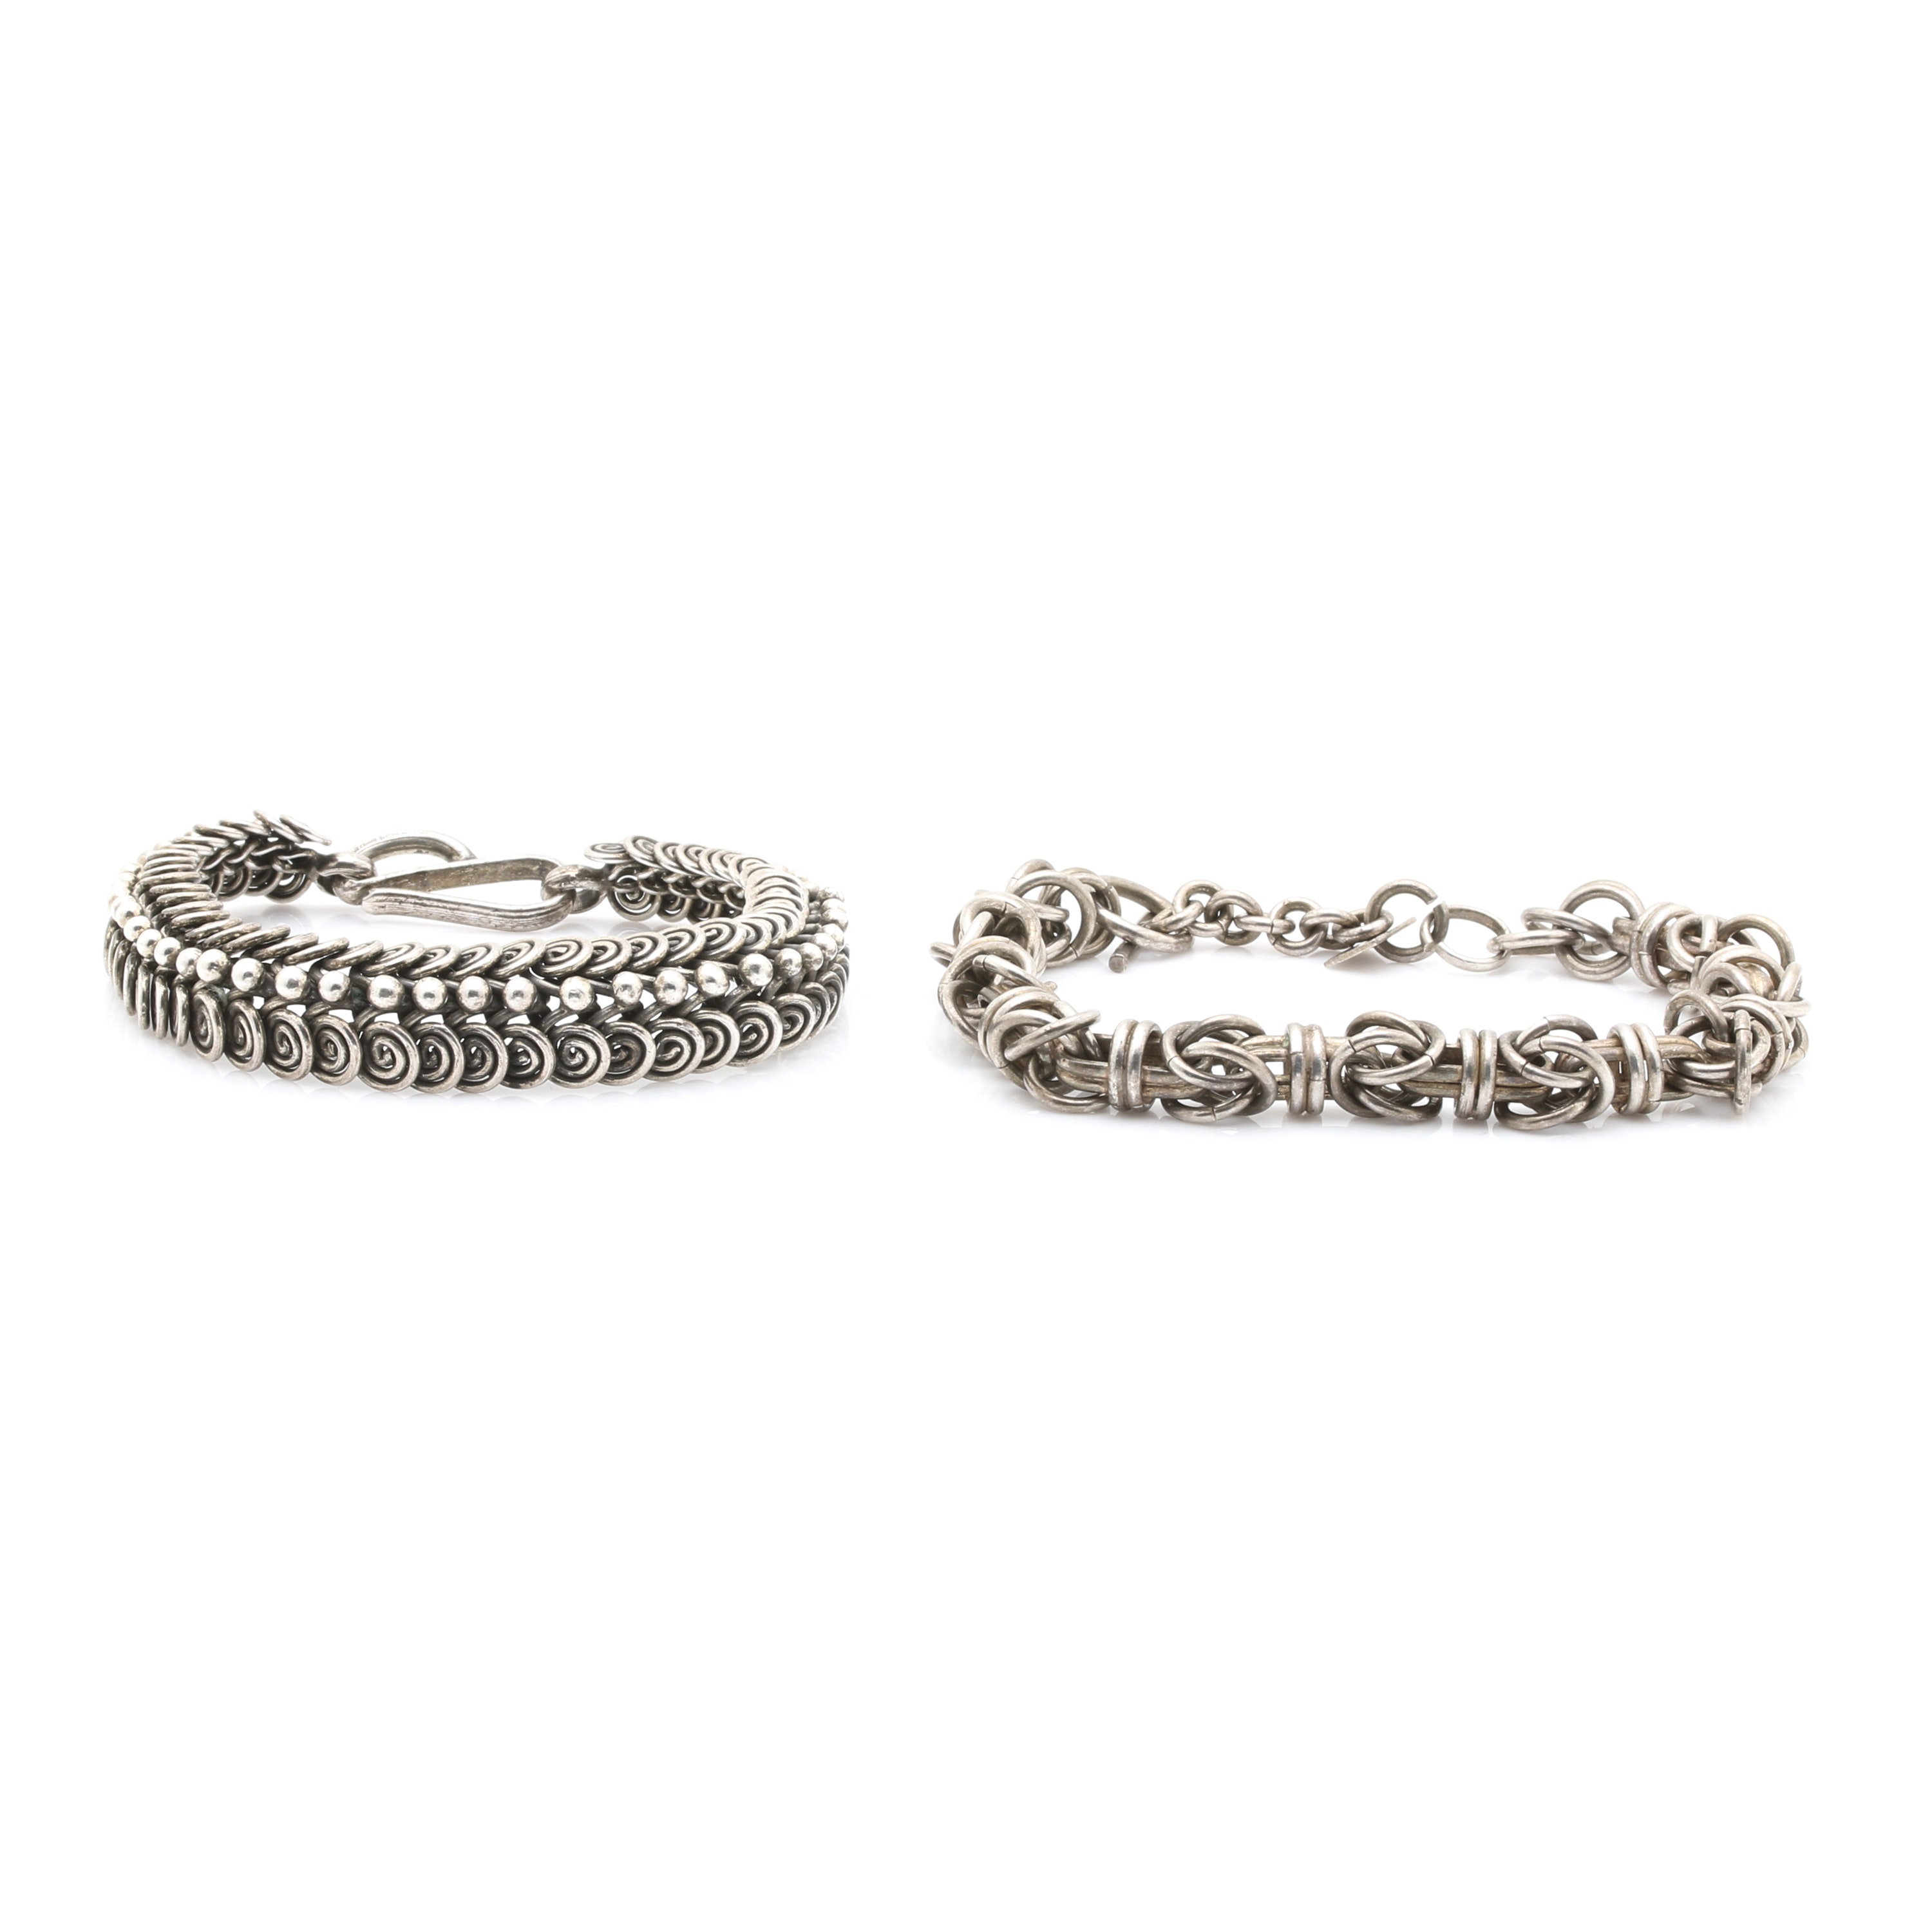 Pair of Sterling Silver Bracelets Including Taxco